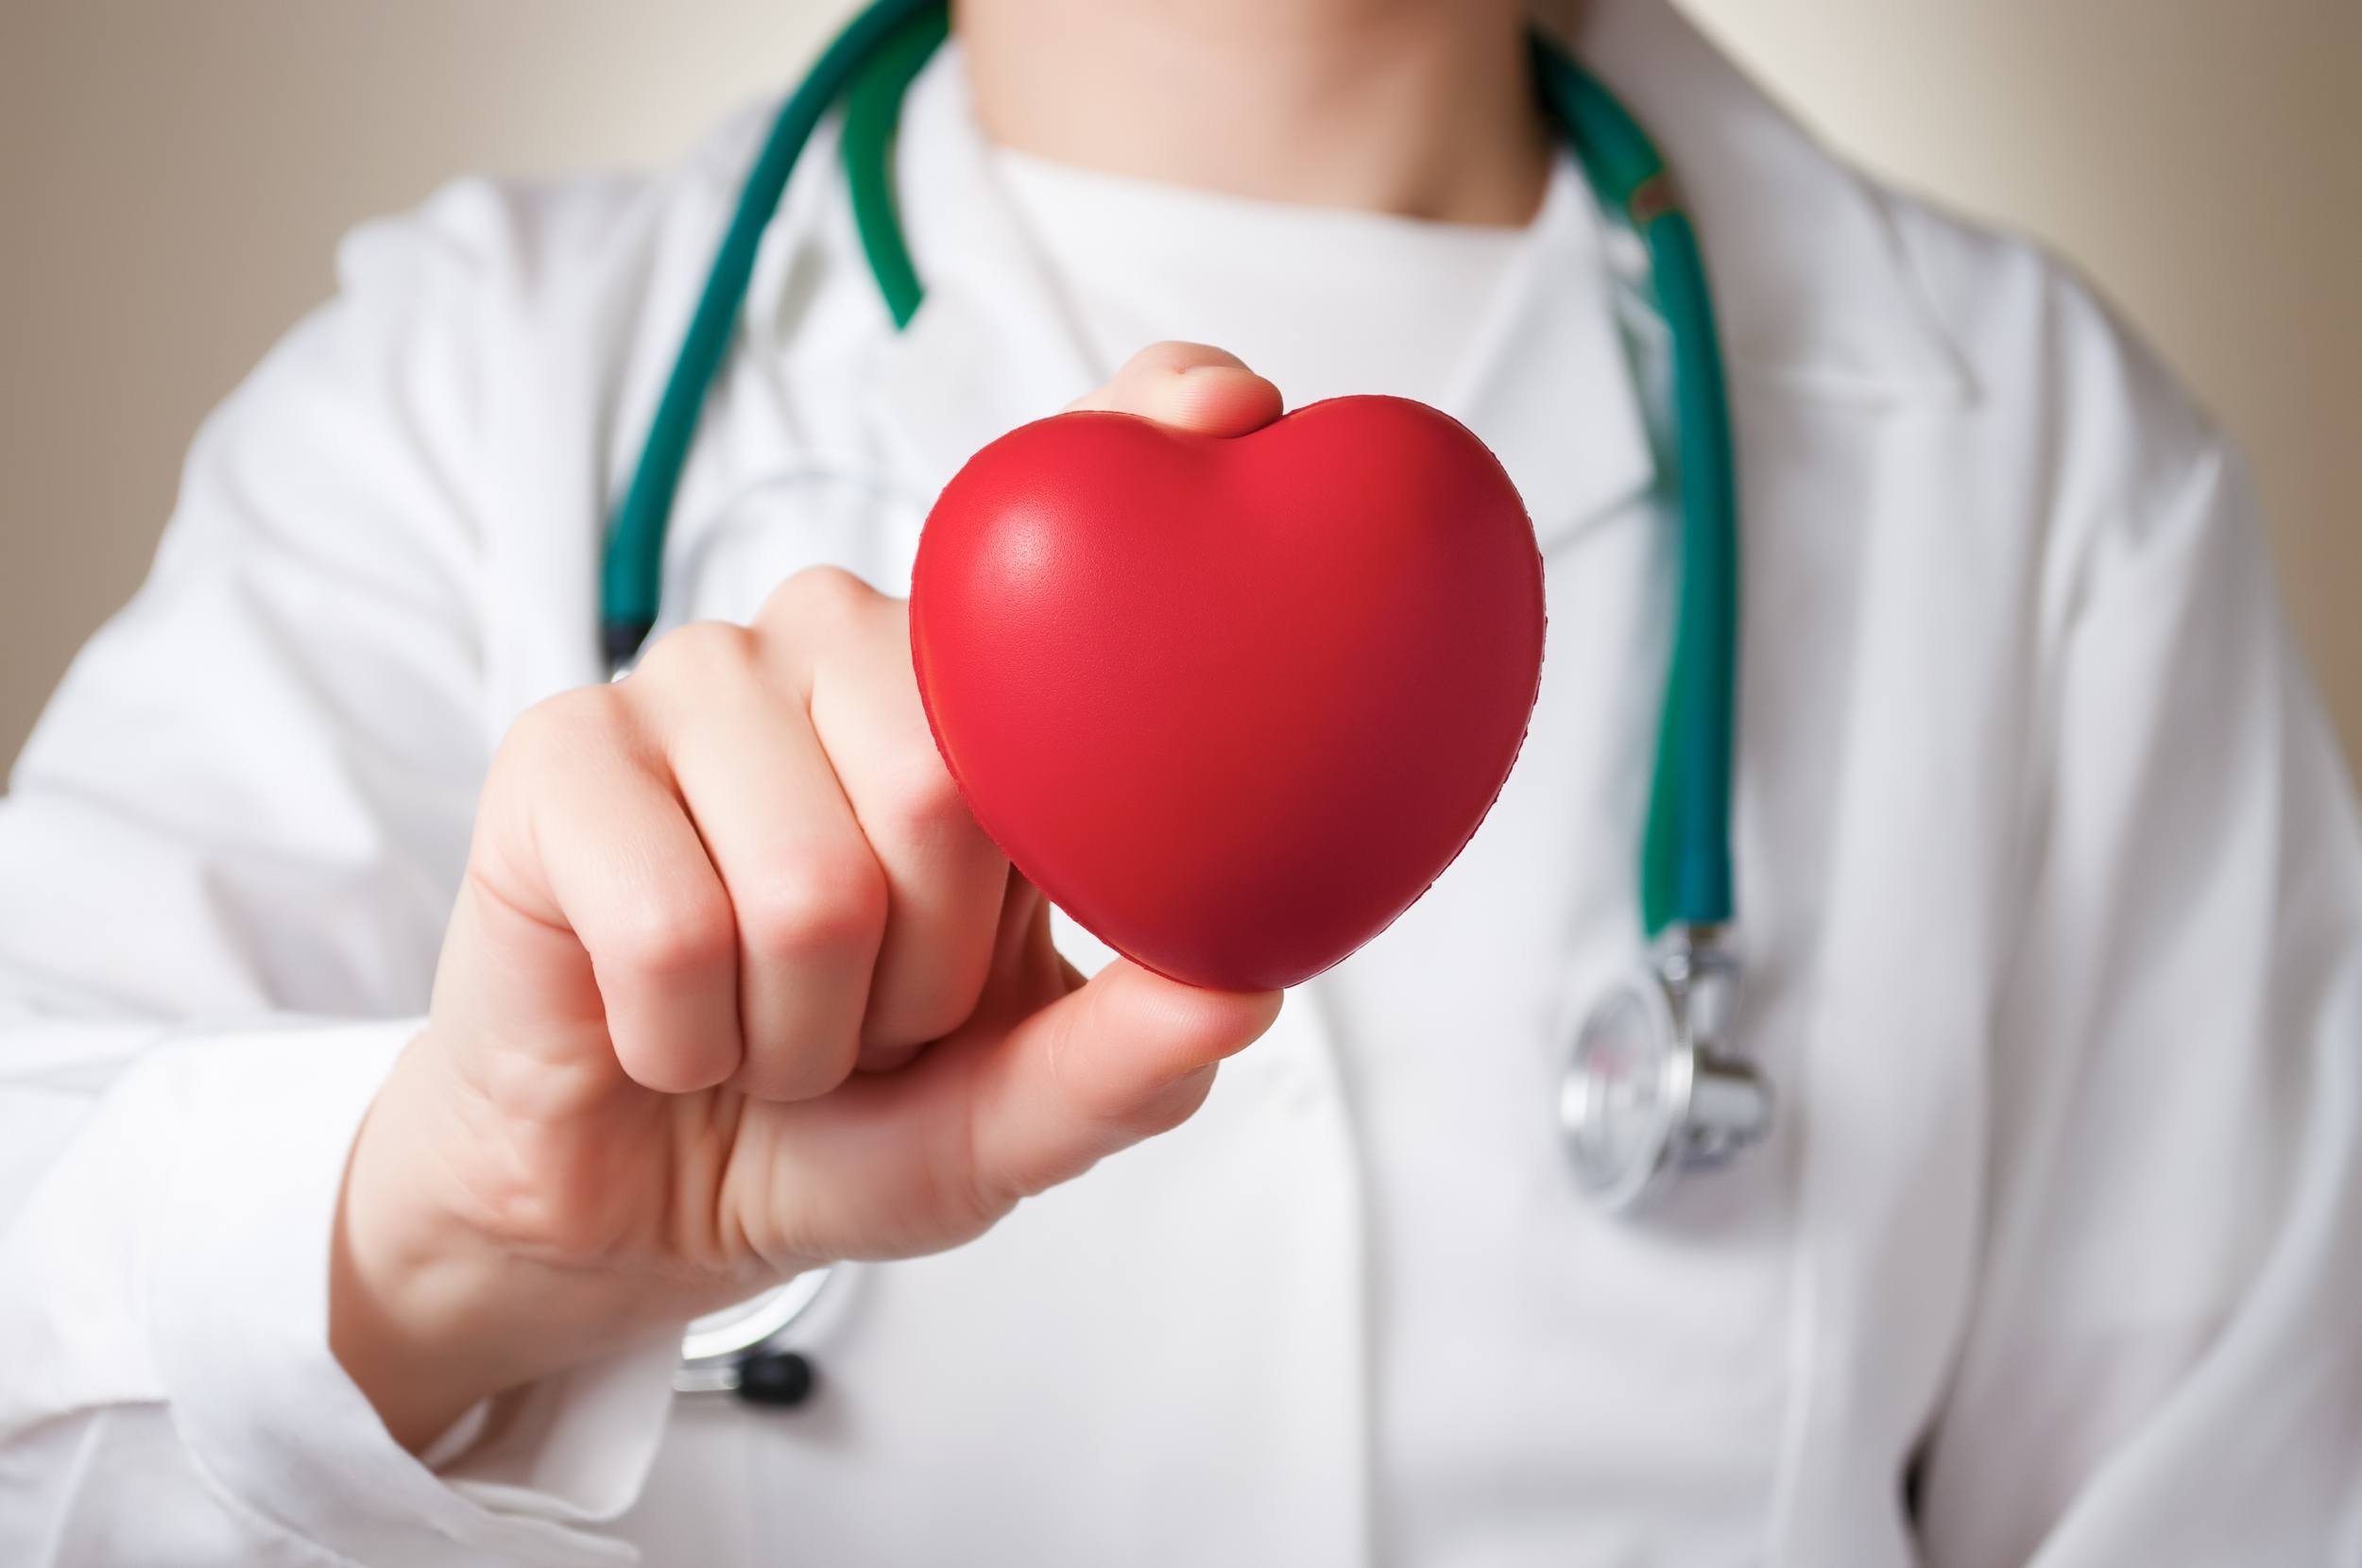 Red-heart-in-the-hand-of-a-physician_shutterstock_135683396